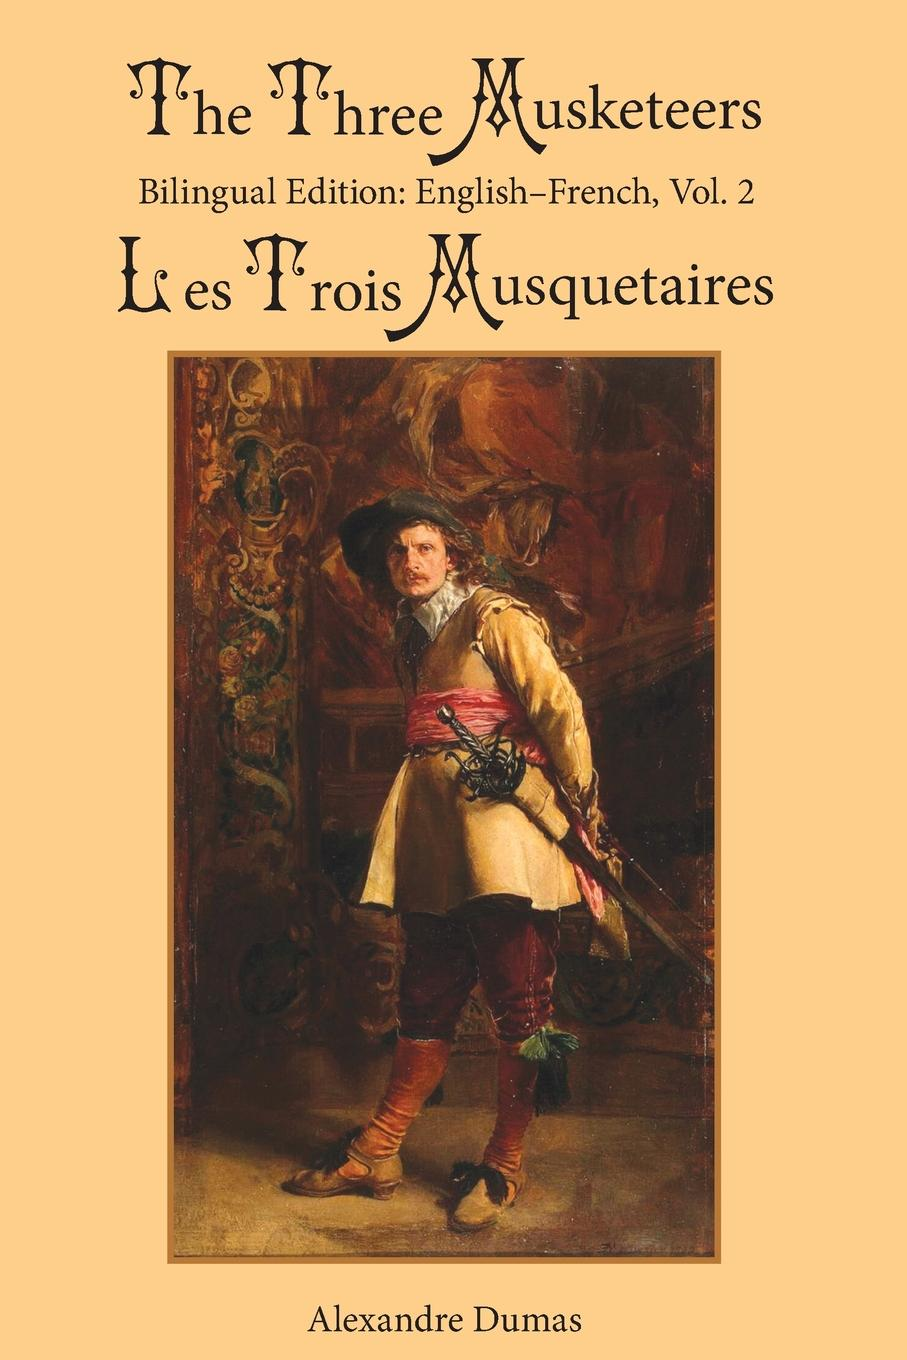 Александр Дюма, William Robson The Three Musketeers, Vol. 2. Bilingual Edition: English-French the affixes of negation in french english and czech